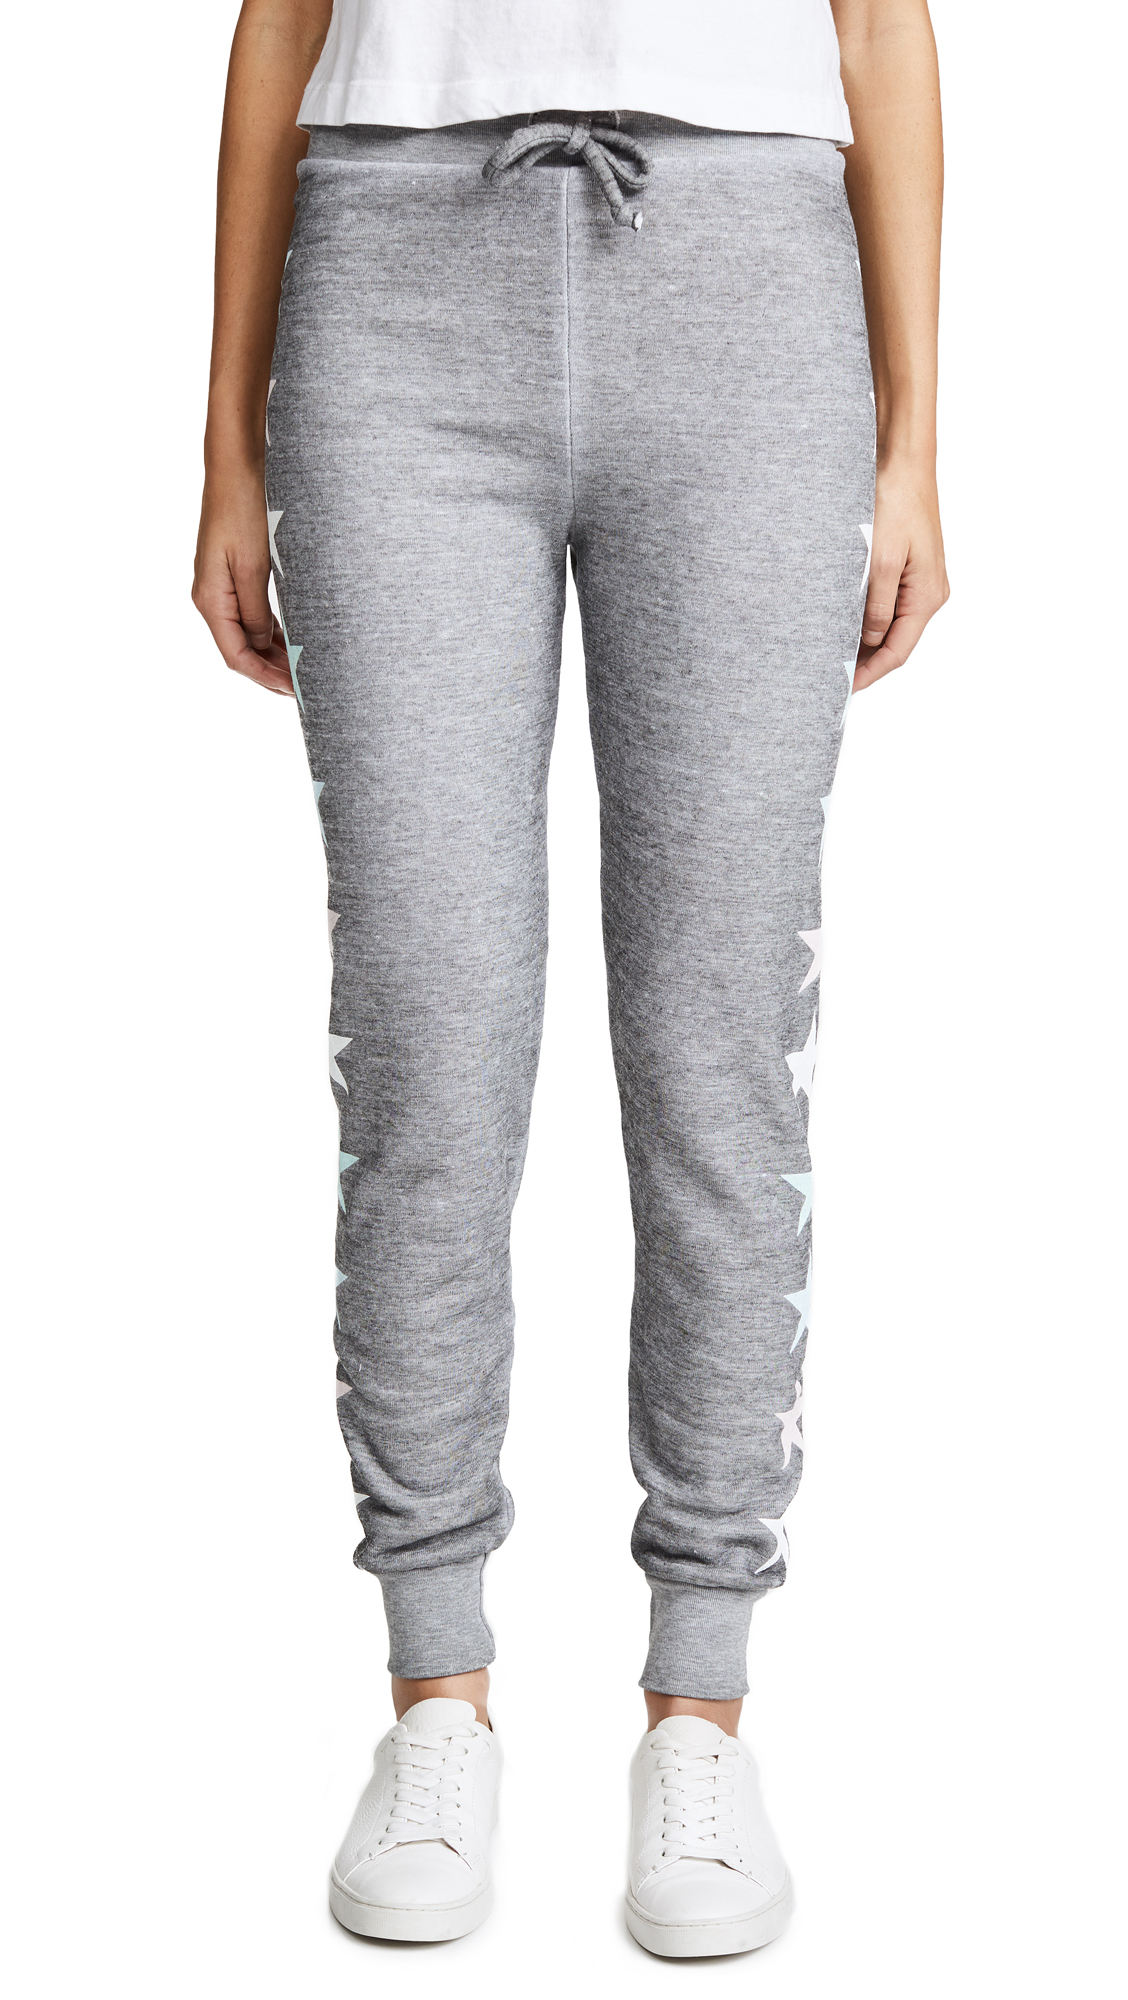 Starlight Sweatpants